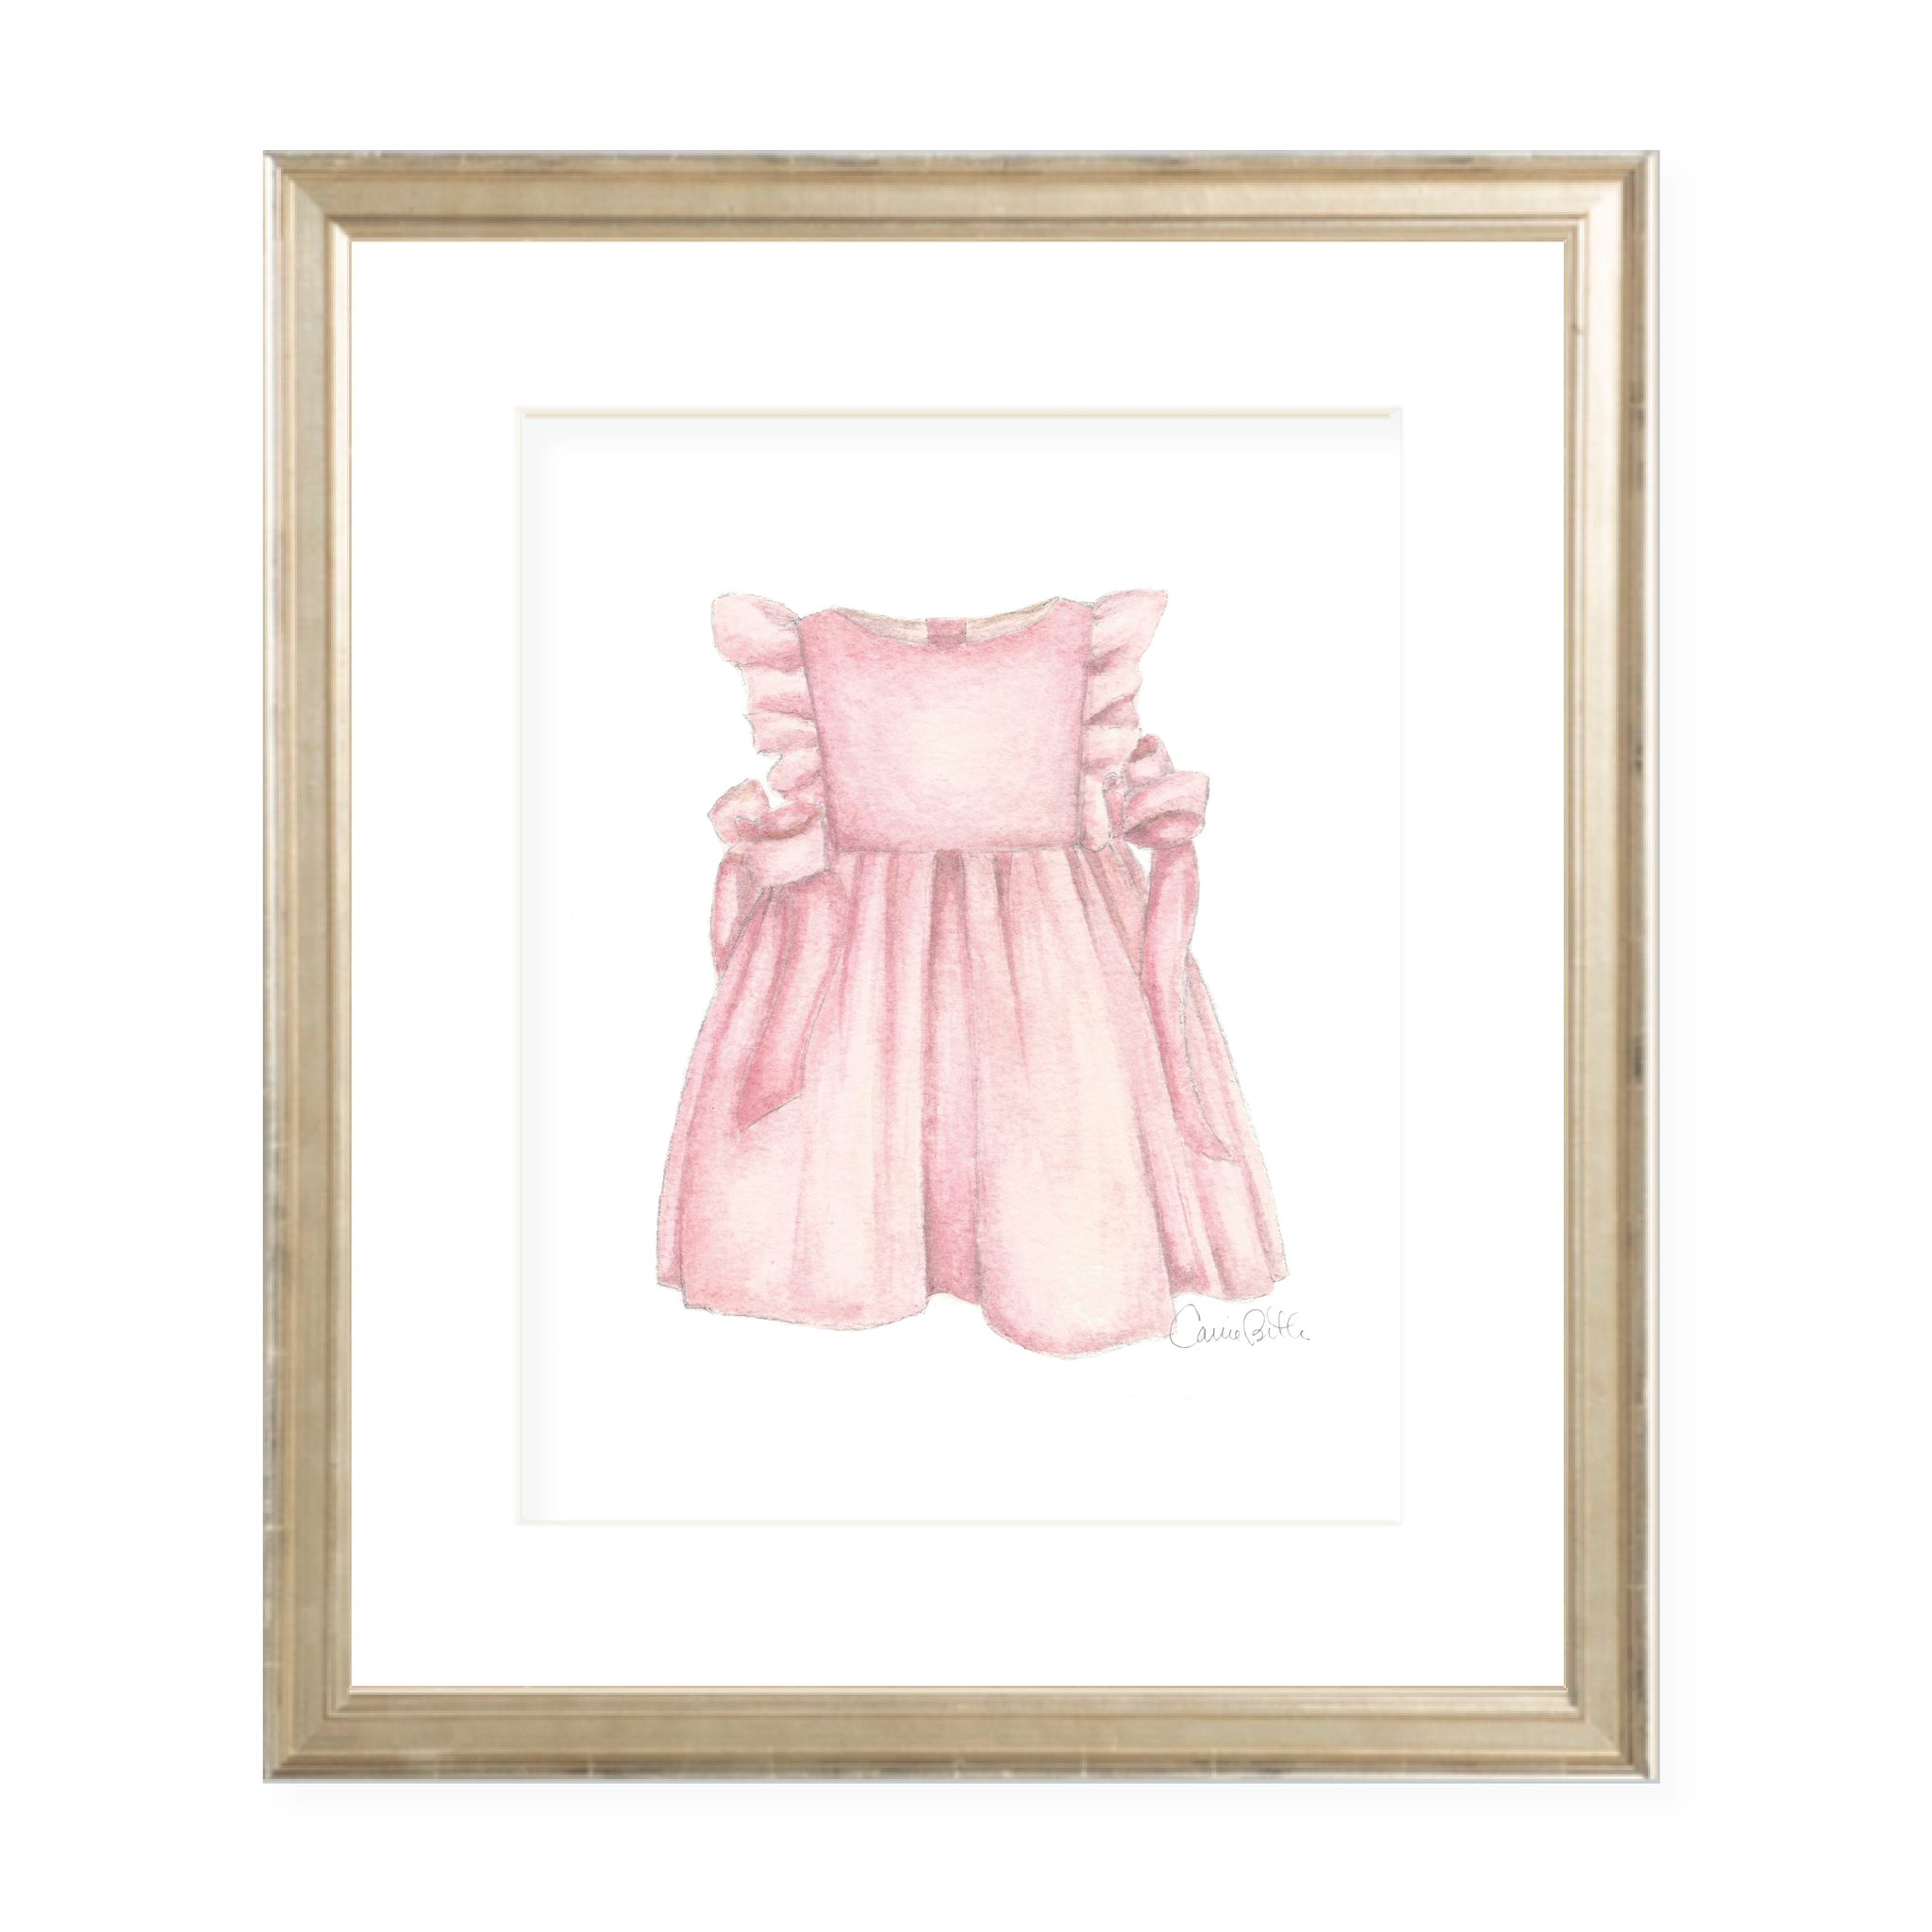 Somerset Dress in Pink Watercolor Print